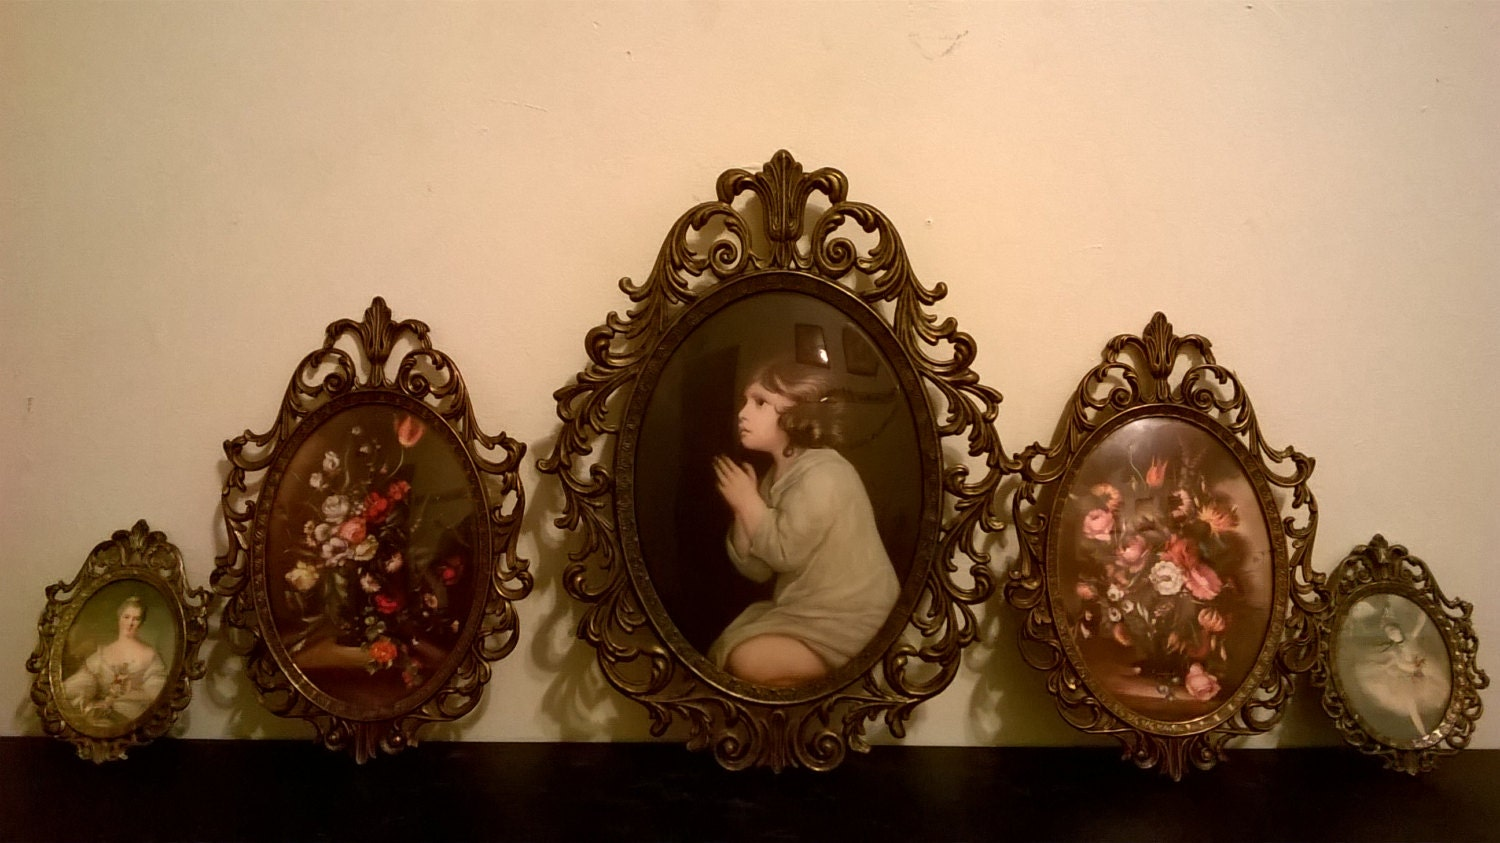 Antique italian ornate bubble glass picture frames read item antique italian ornate bubble glass picture frames read item description jeuxipadfo Image collections